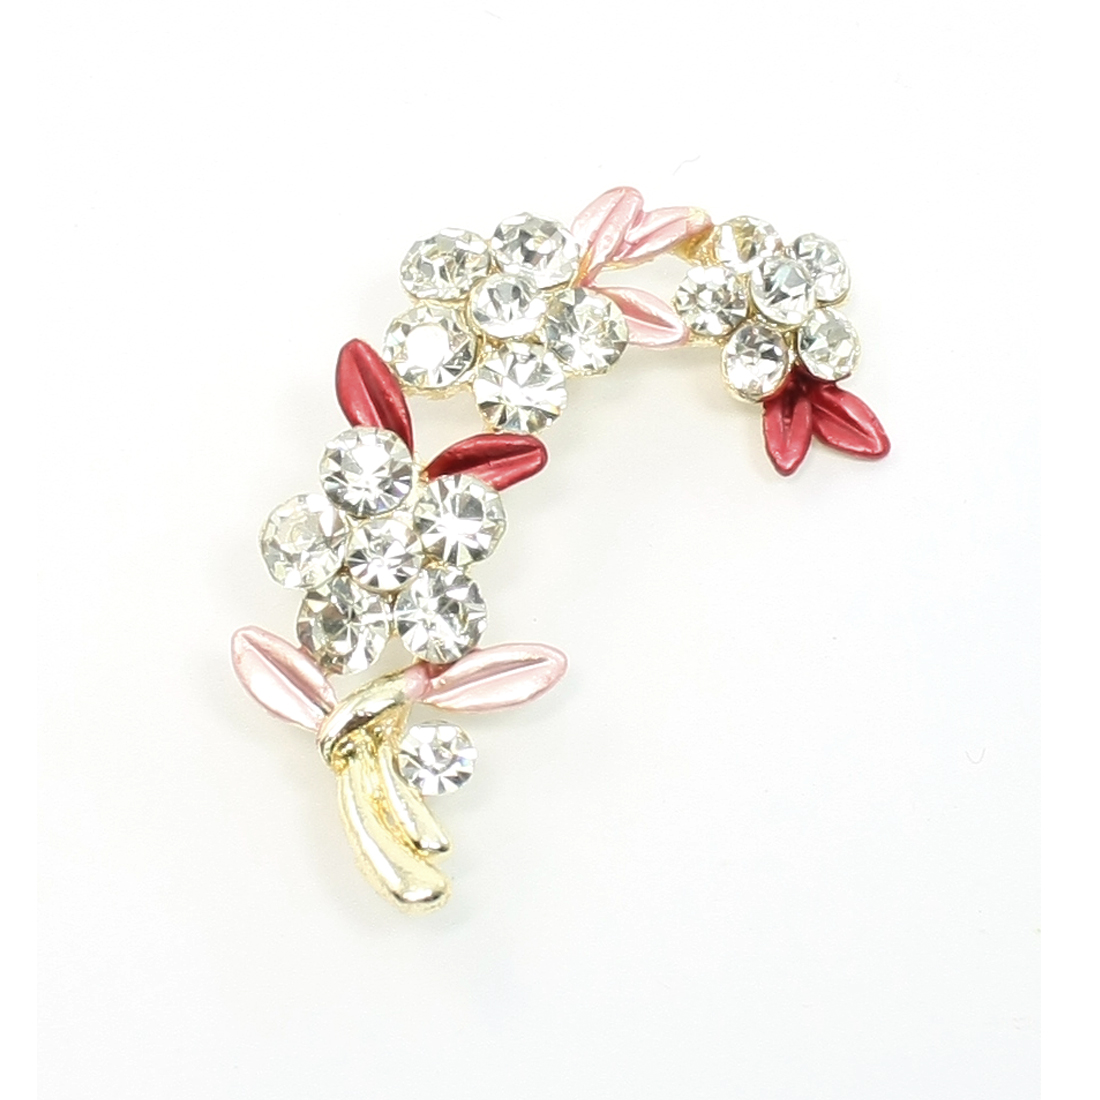 Woman Bling Rhinestone Flower Pin Brooch Pink Red